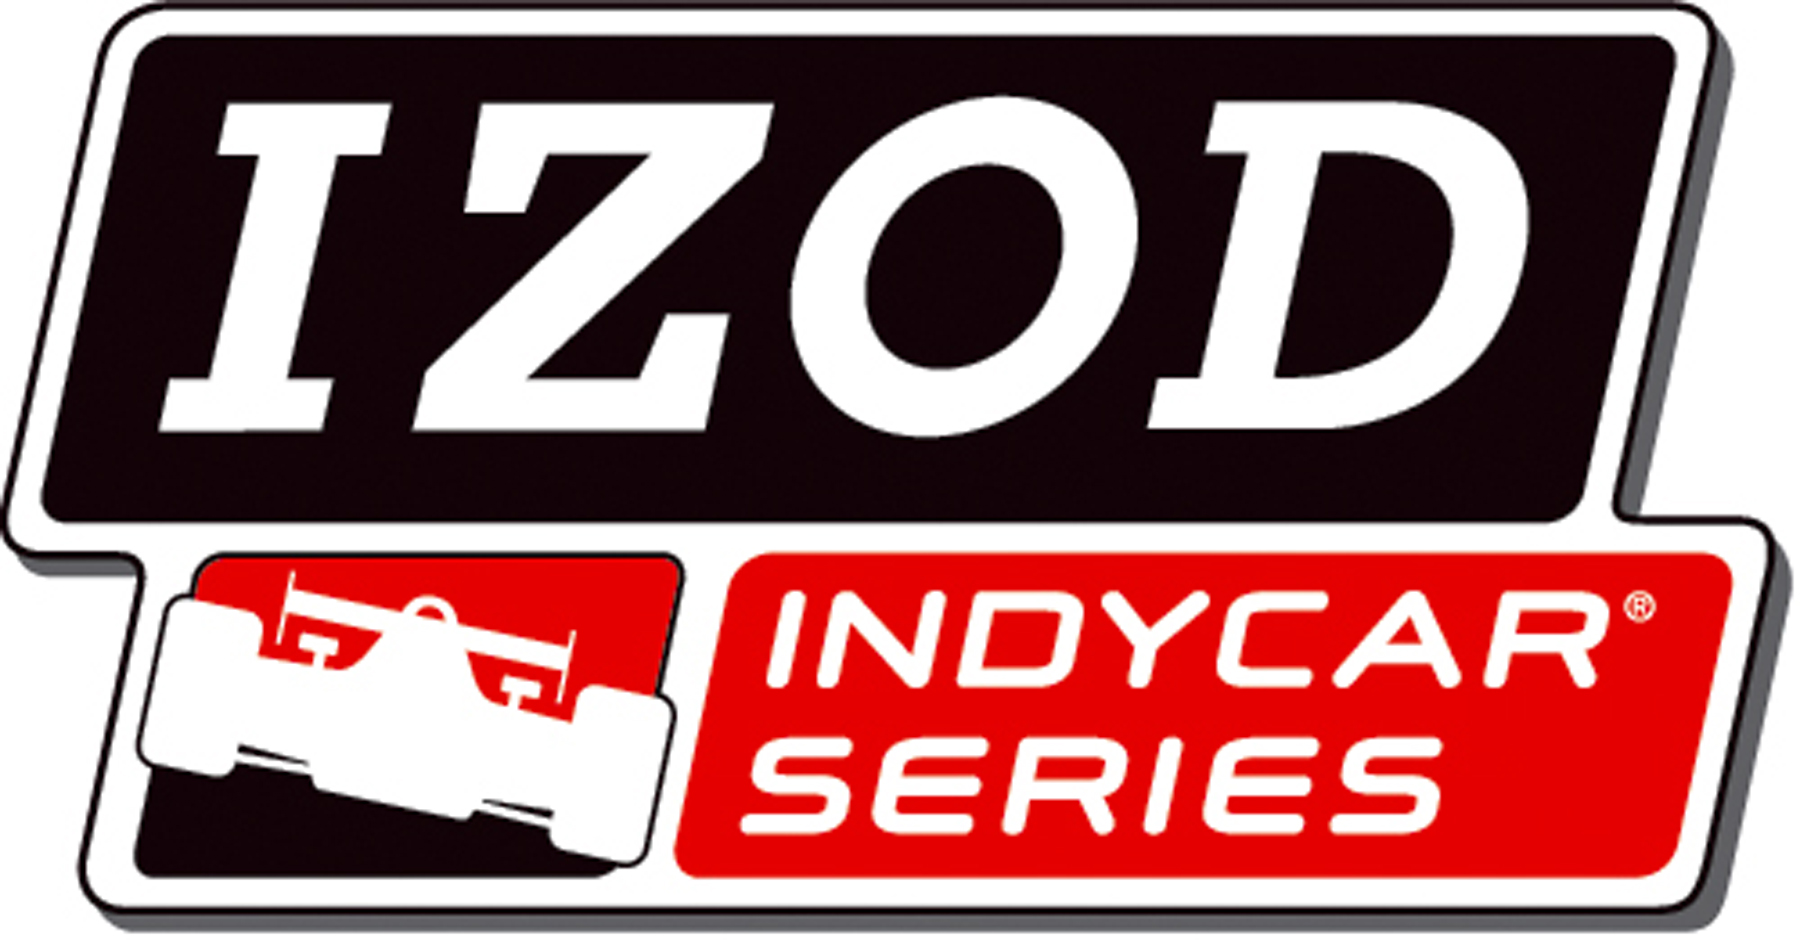 Penalties Fines Announced For Indycar Indy 500 Pre Qualifying